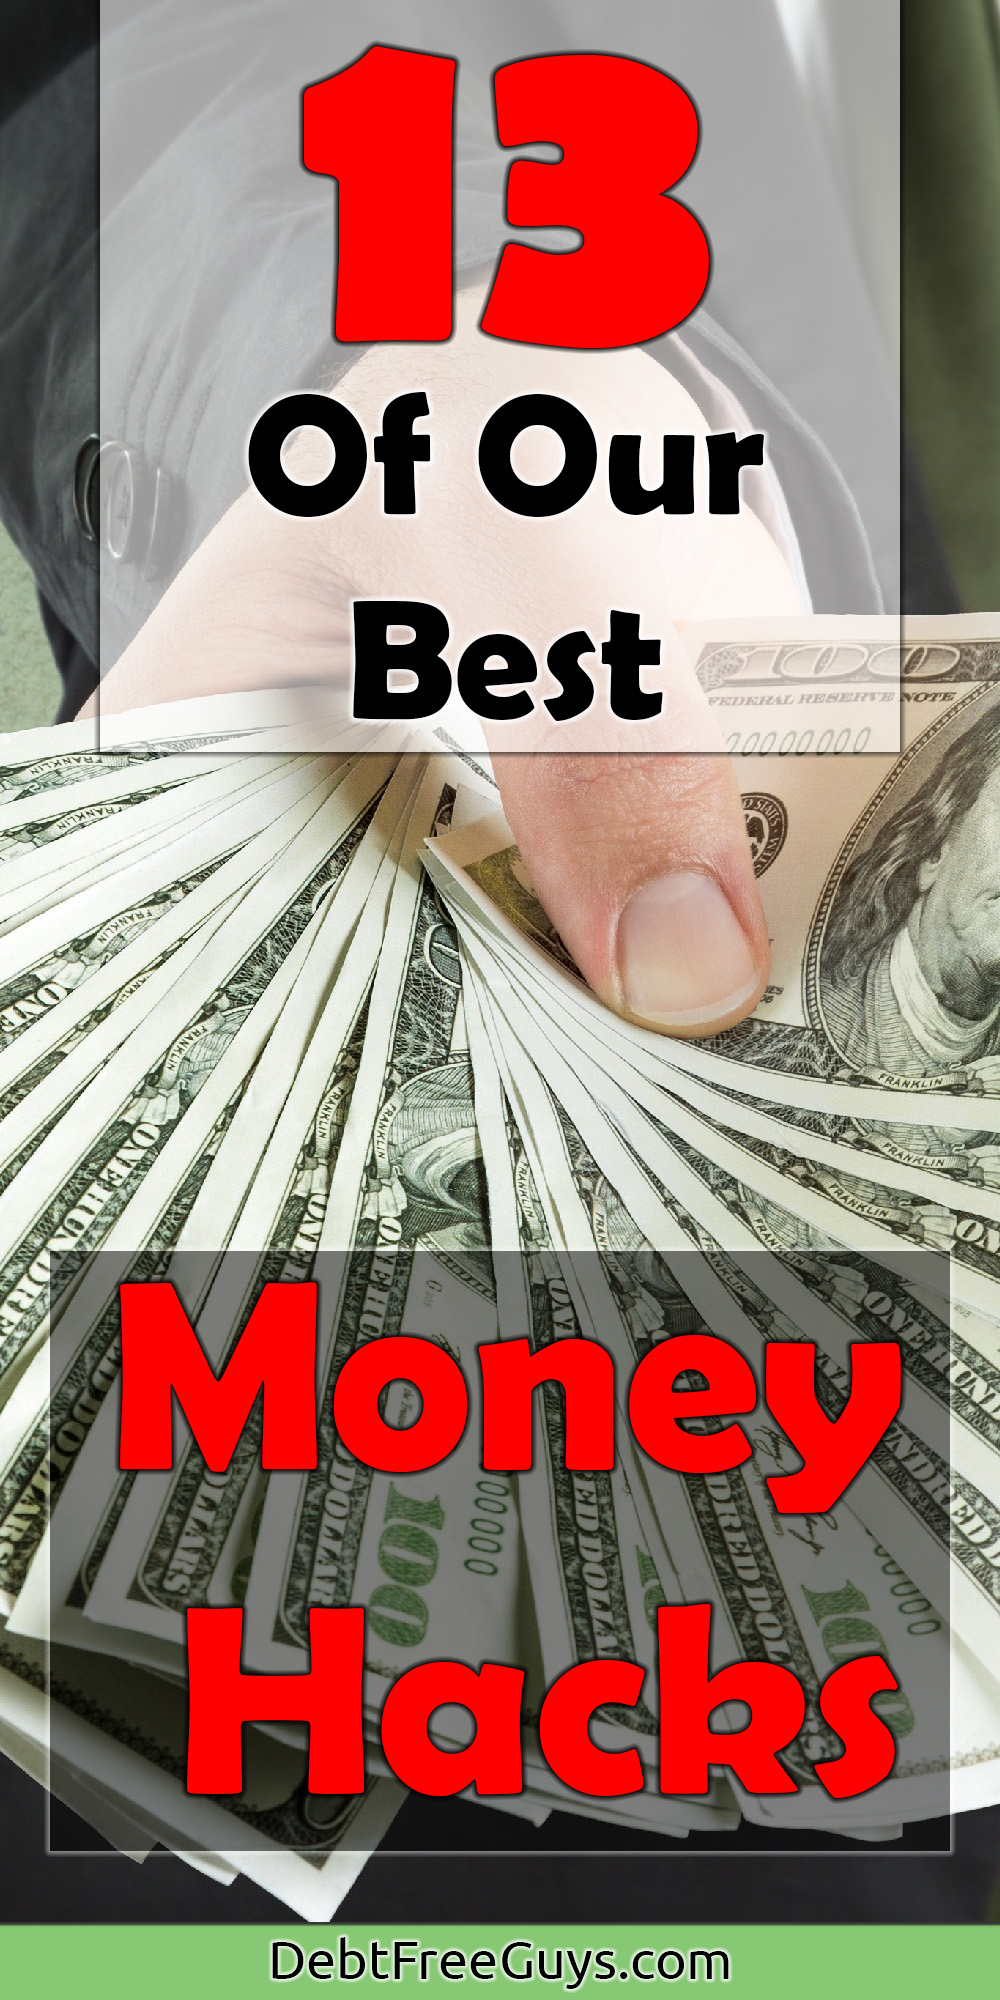 Don't you think that if money was easier you'd have more money? We do, and that's why we came up with our 13 best money hacks to keep more and have more money. These 13 tips will trick your way to riches.